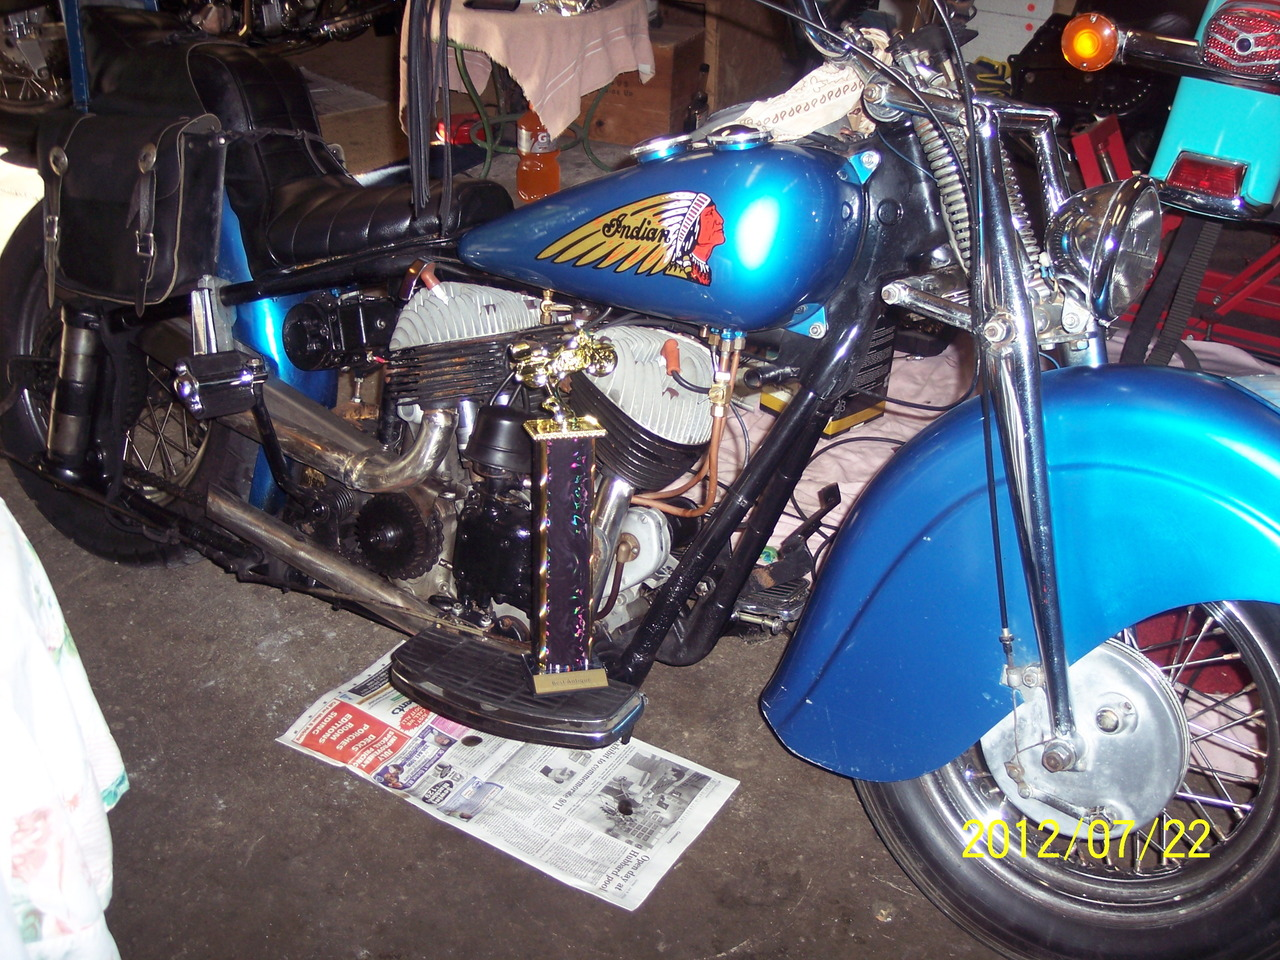 1948 indian chief motorcycle from kinsman oh today sale for Ebay motors indian motorcycles